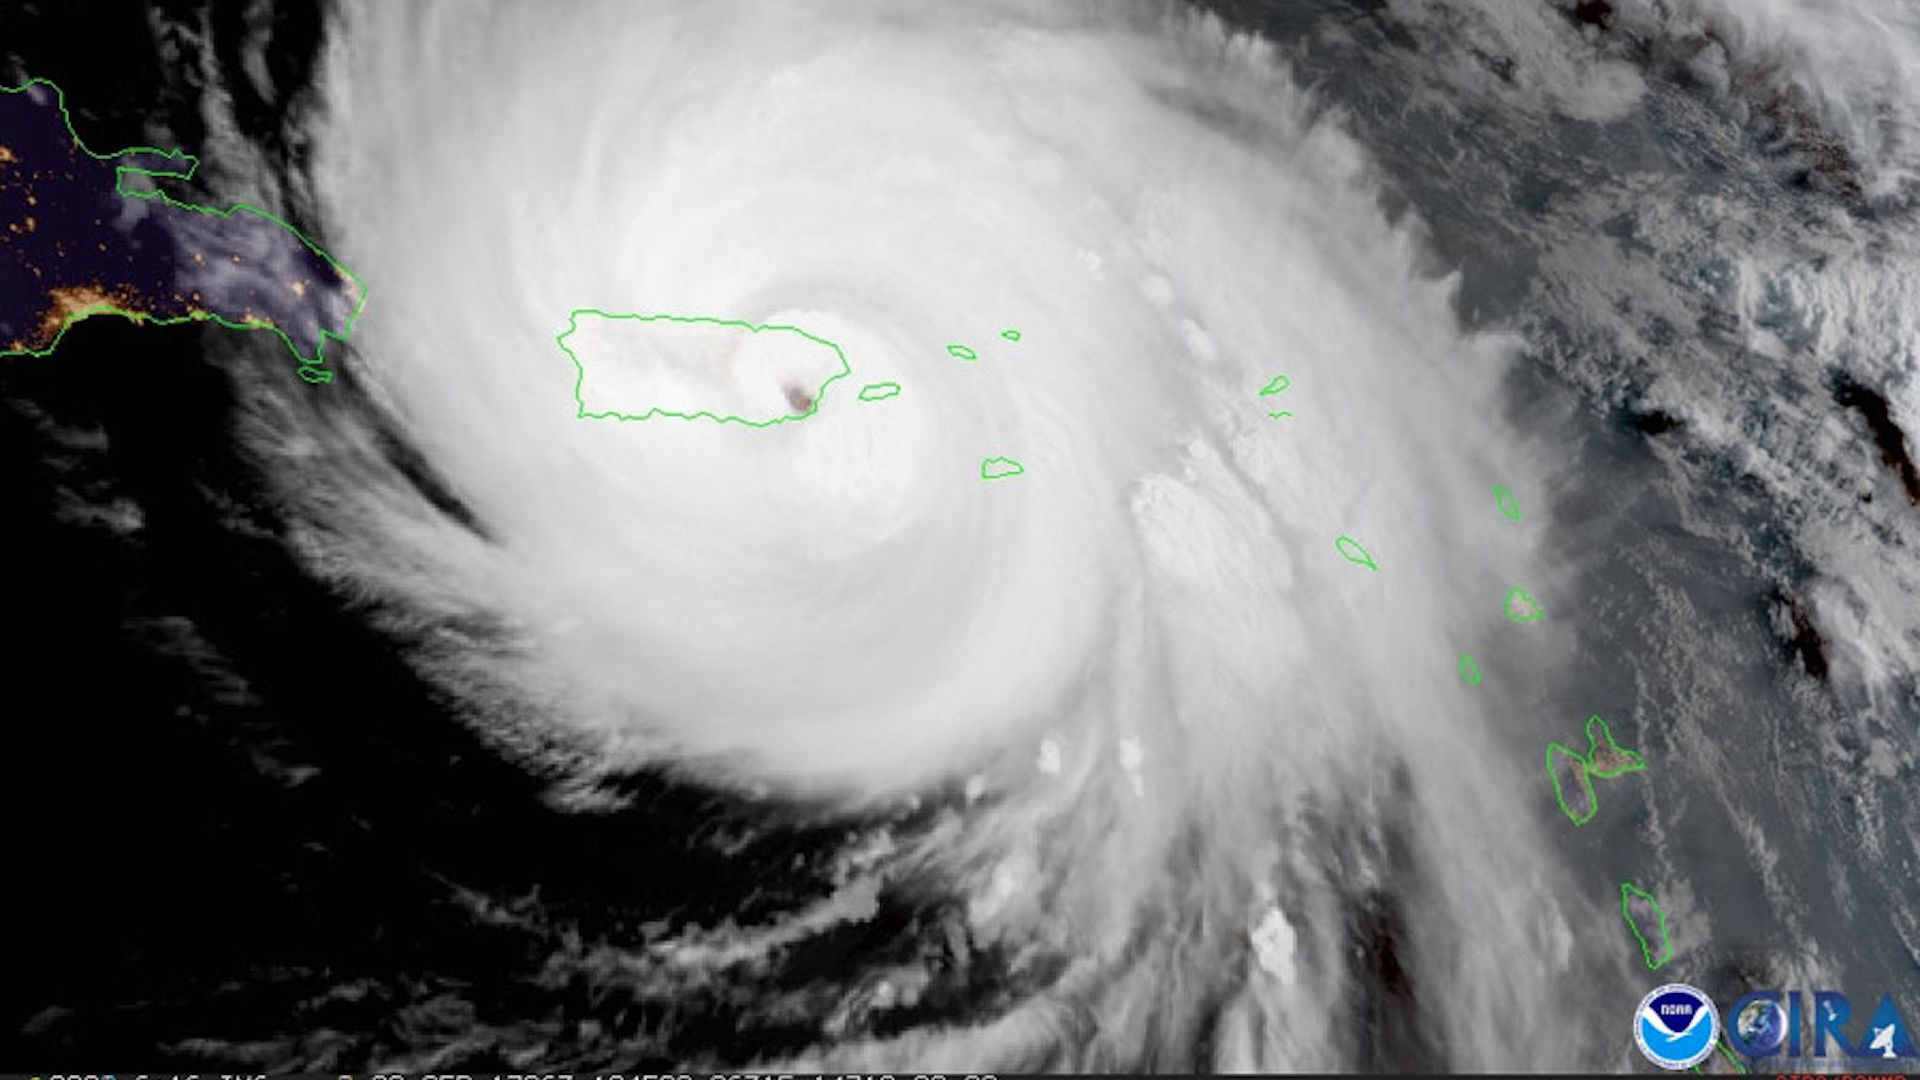 Satellite image showing Hurricane Maria striking Puerto Rico as a Category 4 hurricane in September 2017.